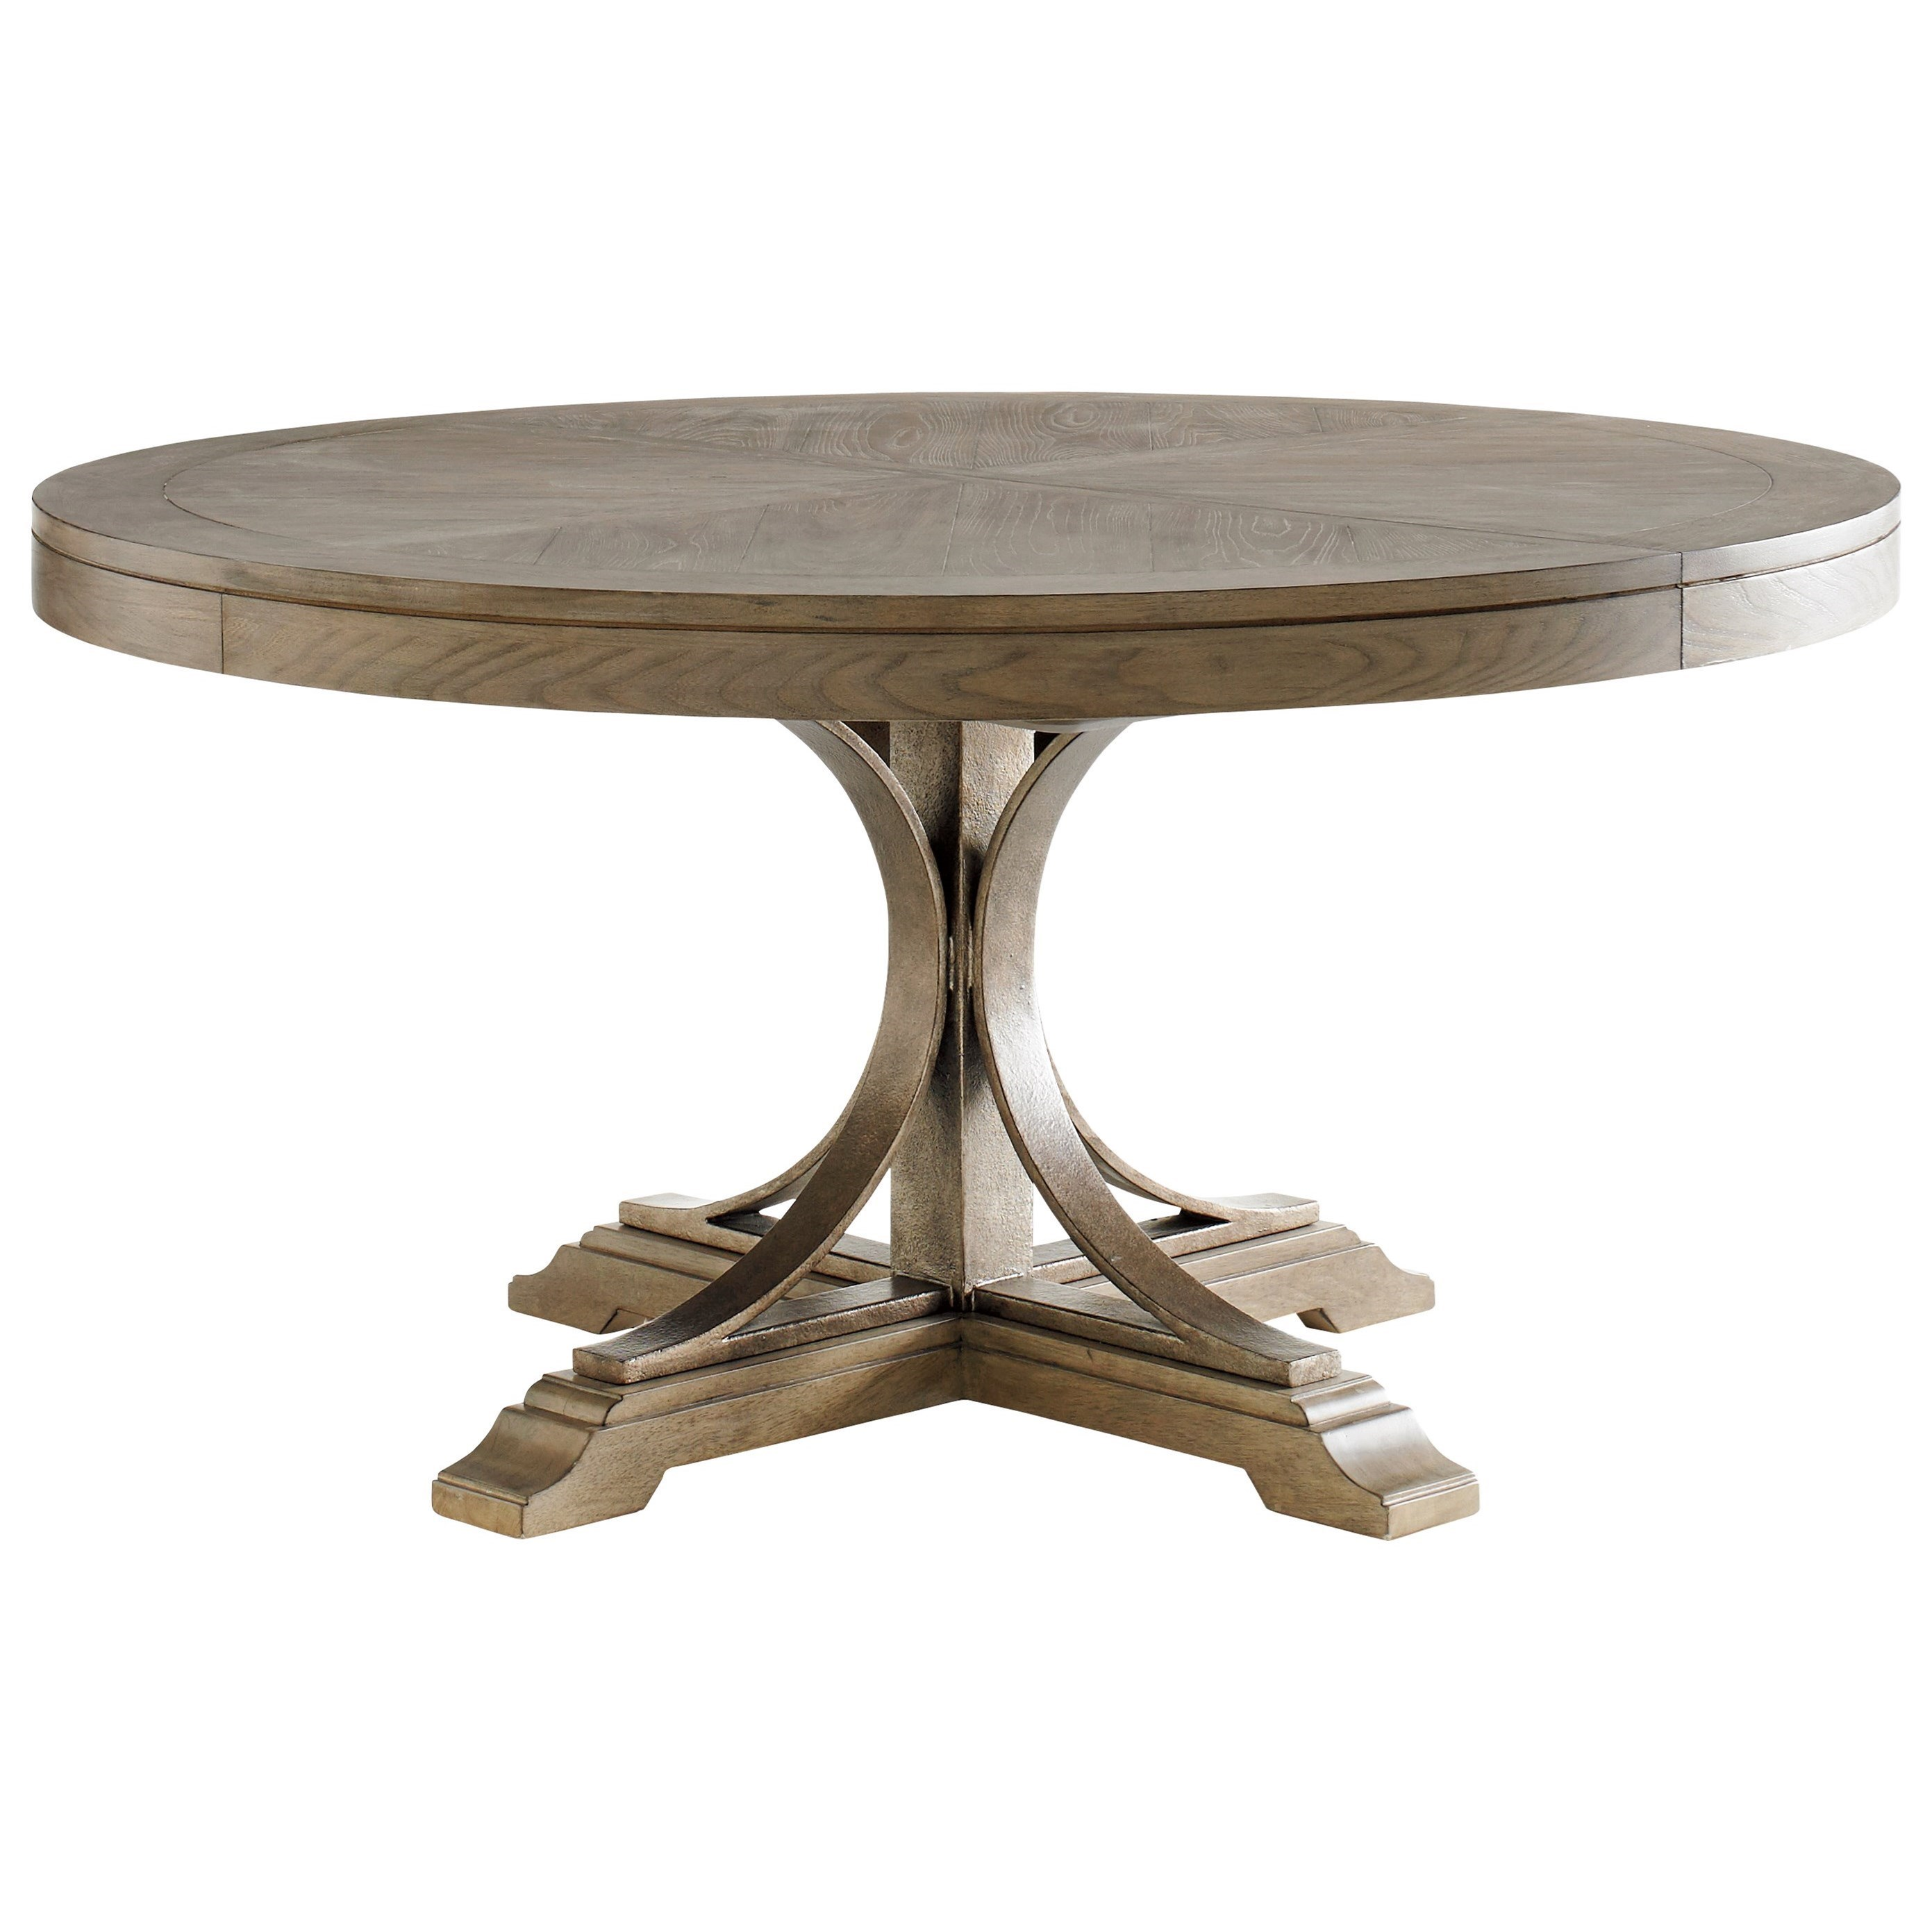 Tommy Bahama Home Cypress Point Atwell Round Dining Table  : products2Ftommybahamahome2Fcolor2Fcypress20point 1900098683561 875c b1jpgscalebothampwidth500ampheight500ampfsharpen25ampdown from www.wayside-furniture.com size 500 x 500 jpeg 23kB